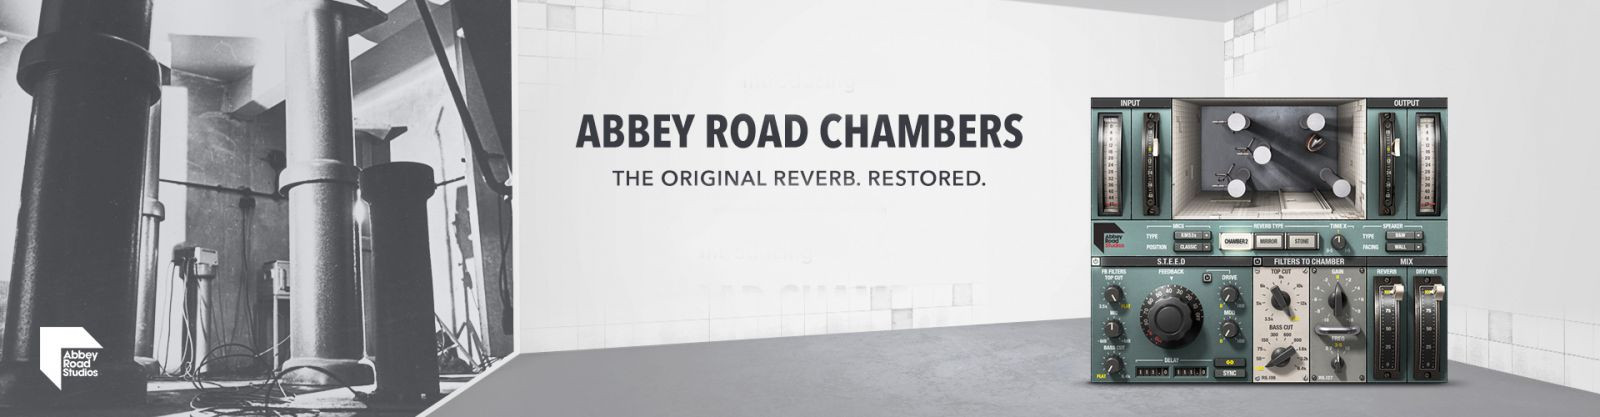 Abbey Road Chambers Header